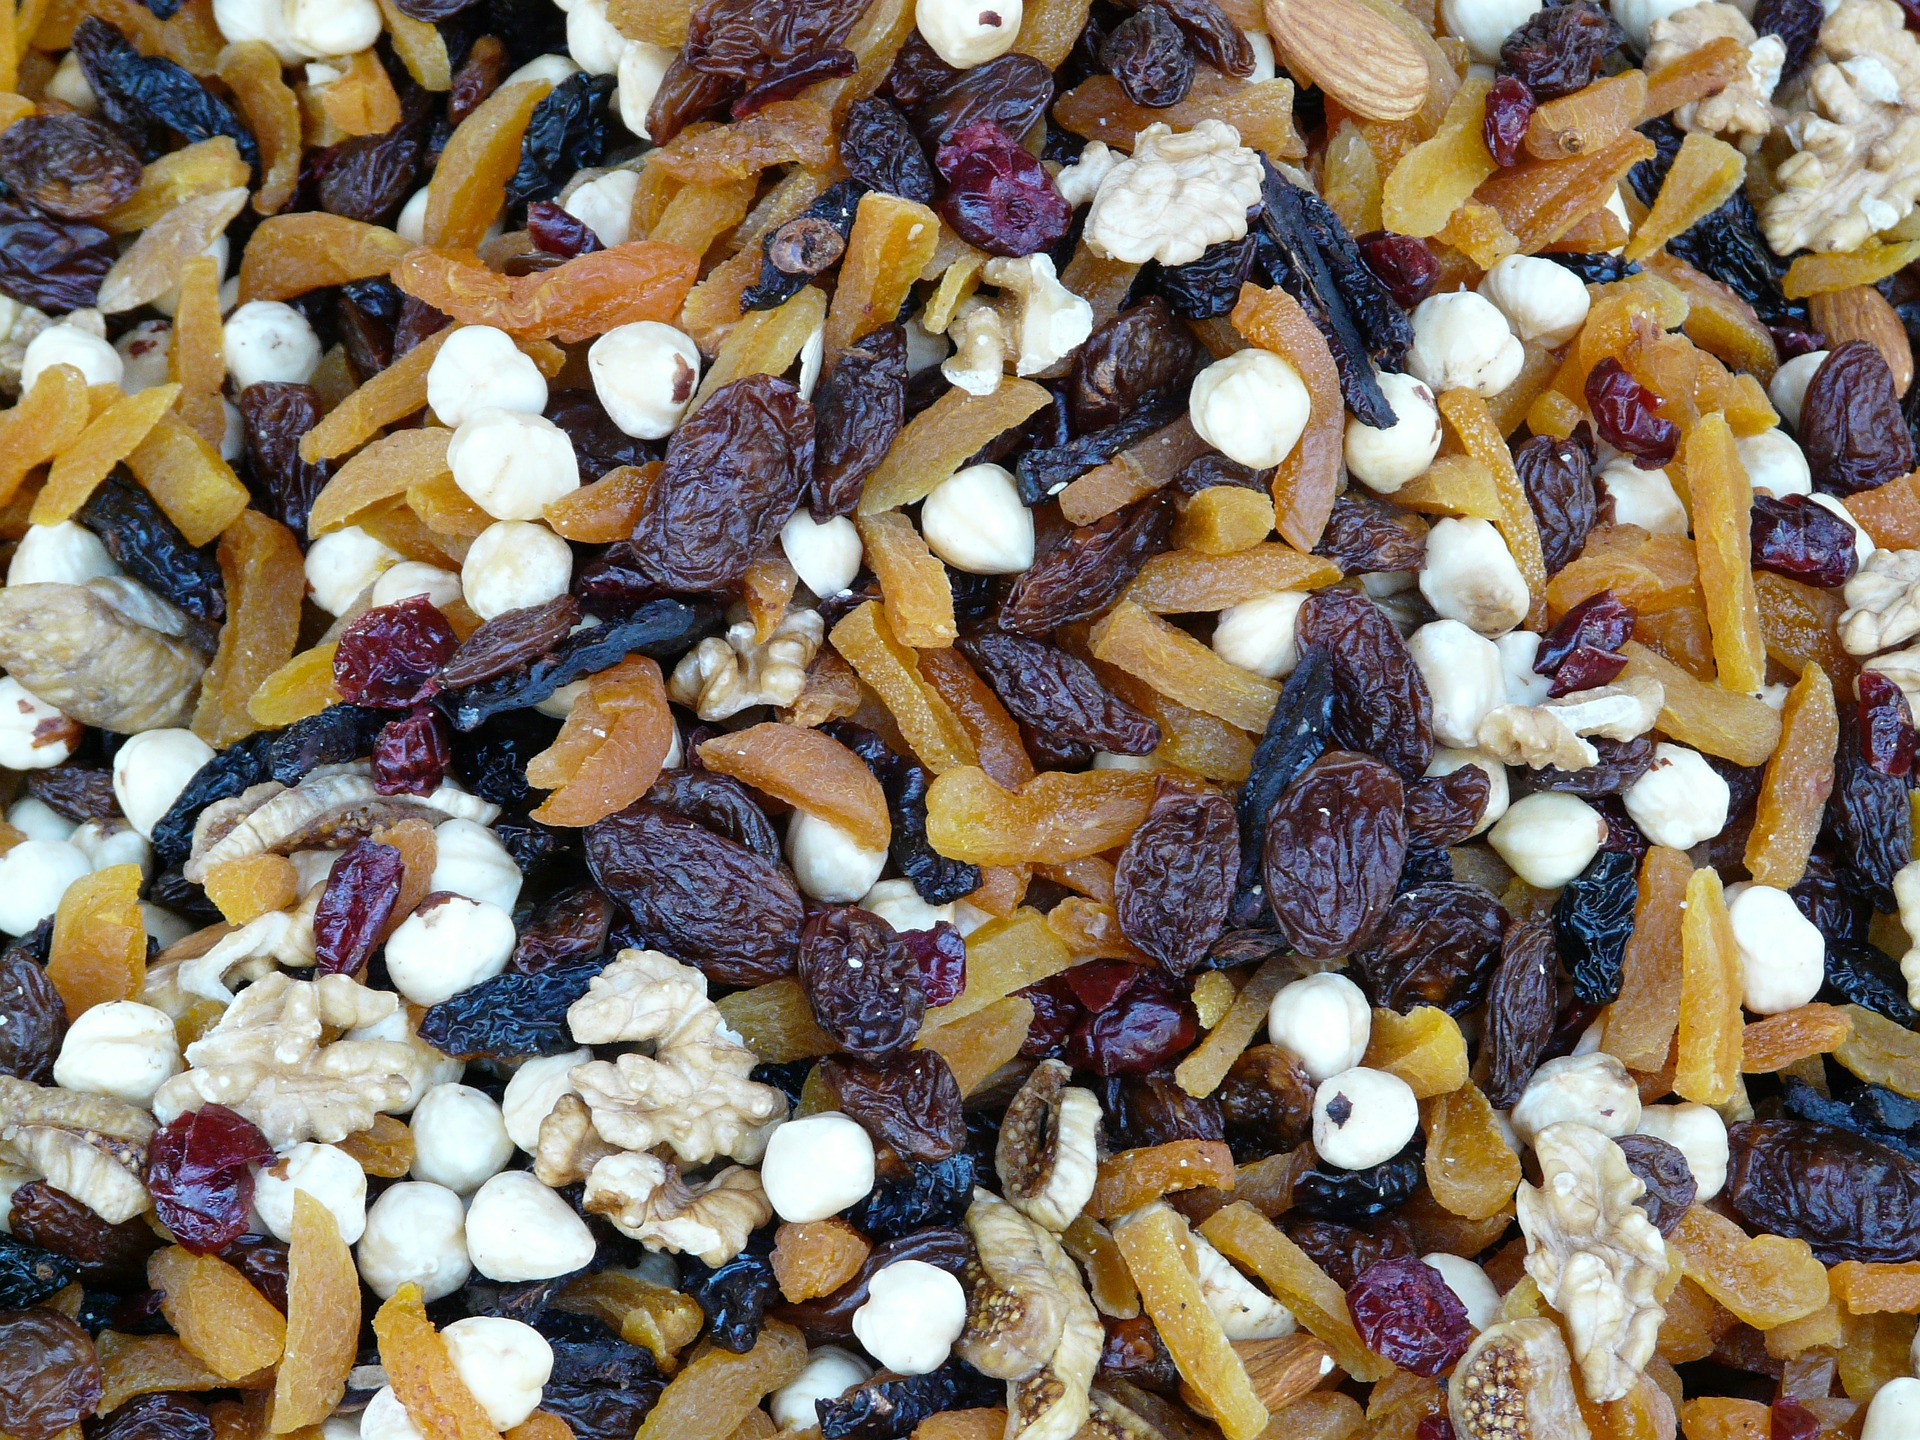 Healthy trail mix recipe includes nuts and fruits.